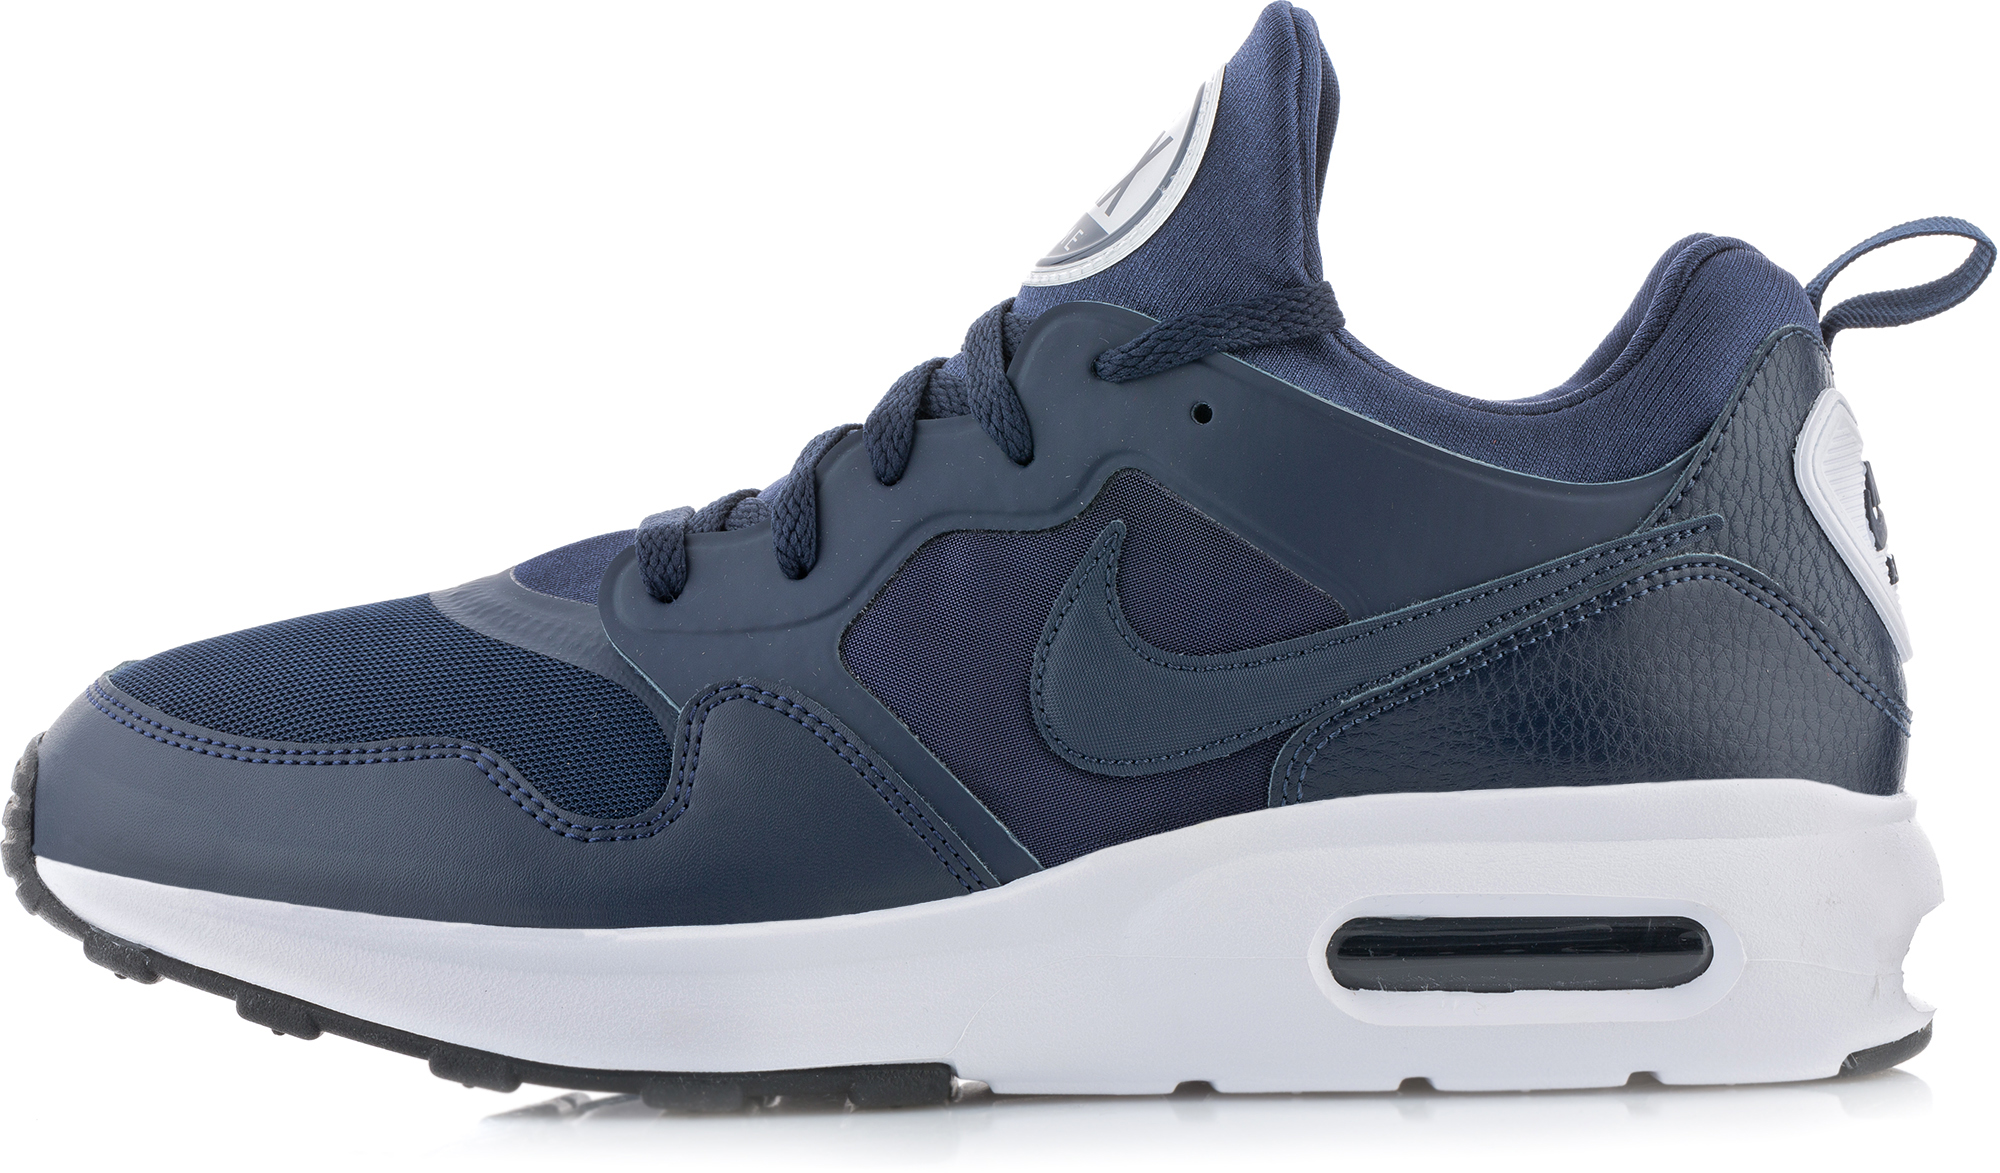 Nike Кроссовки мужские Nike Air Max Prime win beauty products australia